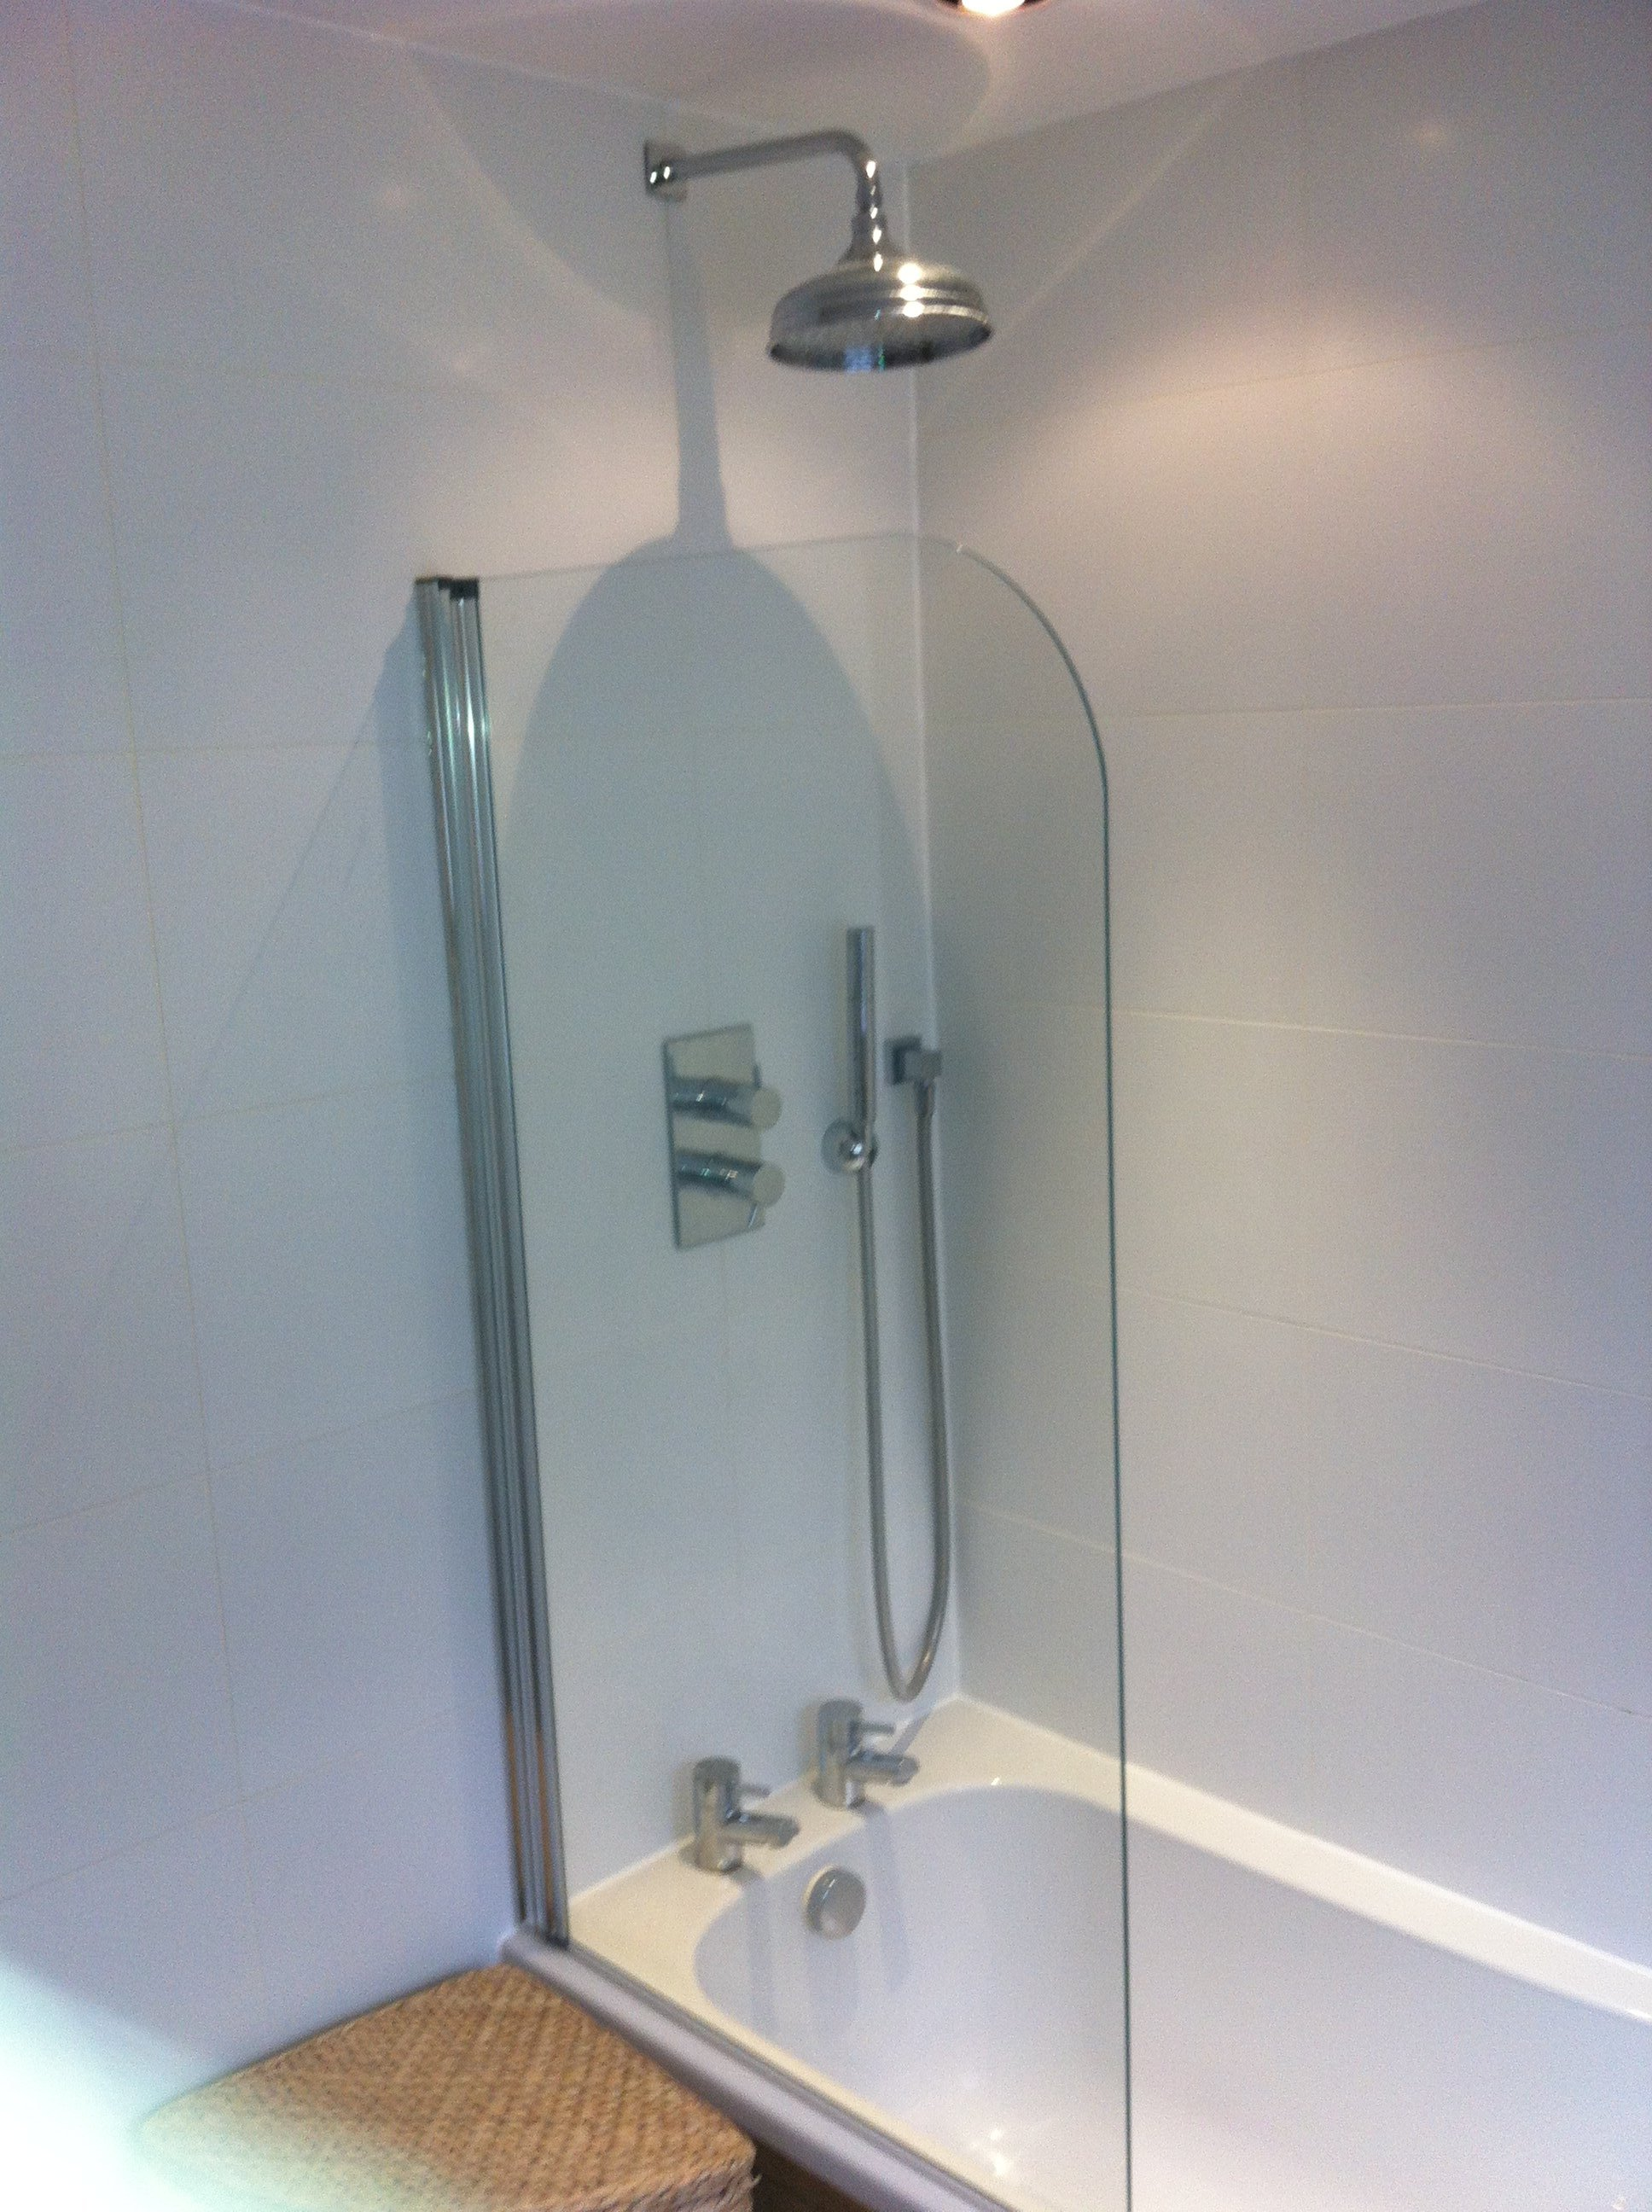 Plumbing Services | R&G Plumbing & Heating Services